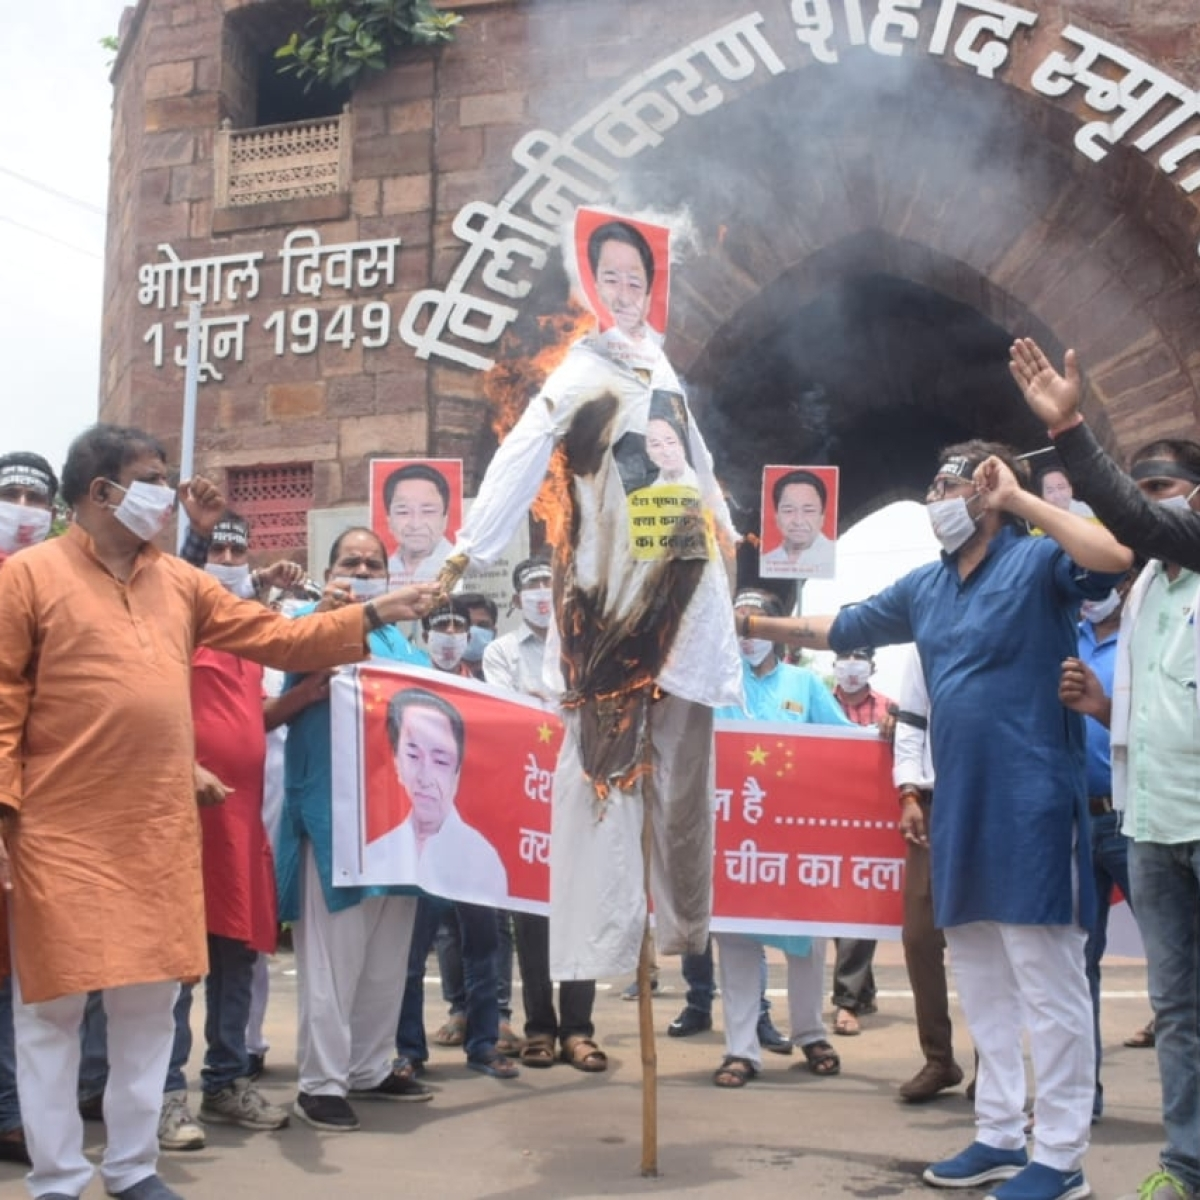 Bhopal: BJP burns effigy of Kamal Nath, dubs him 'Chinese agent'